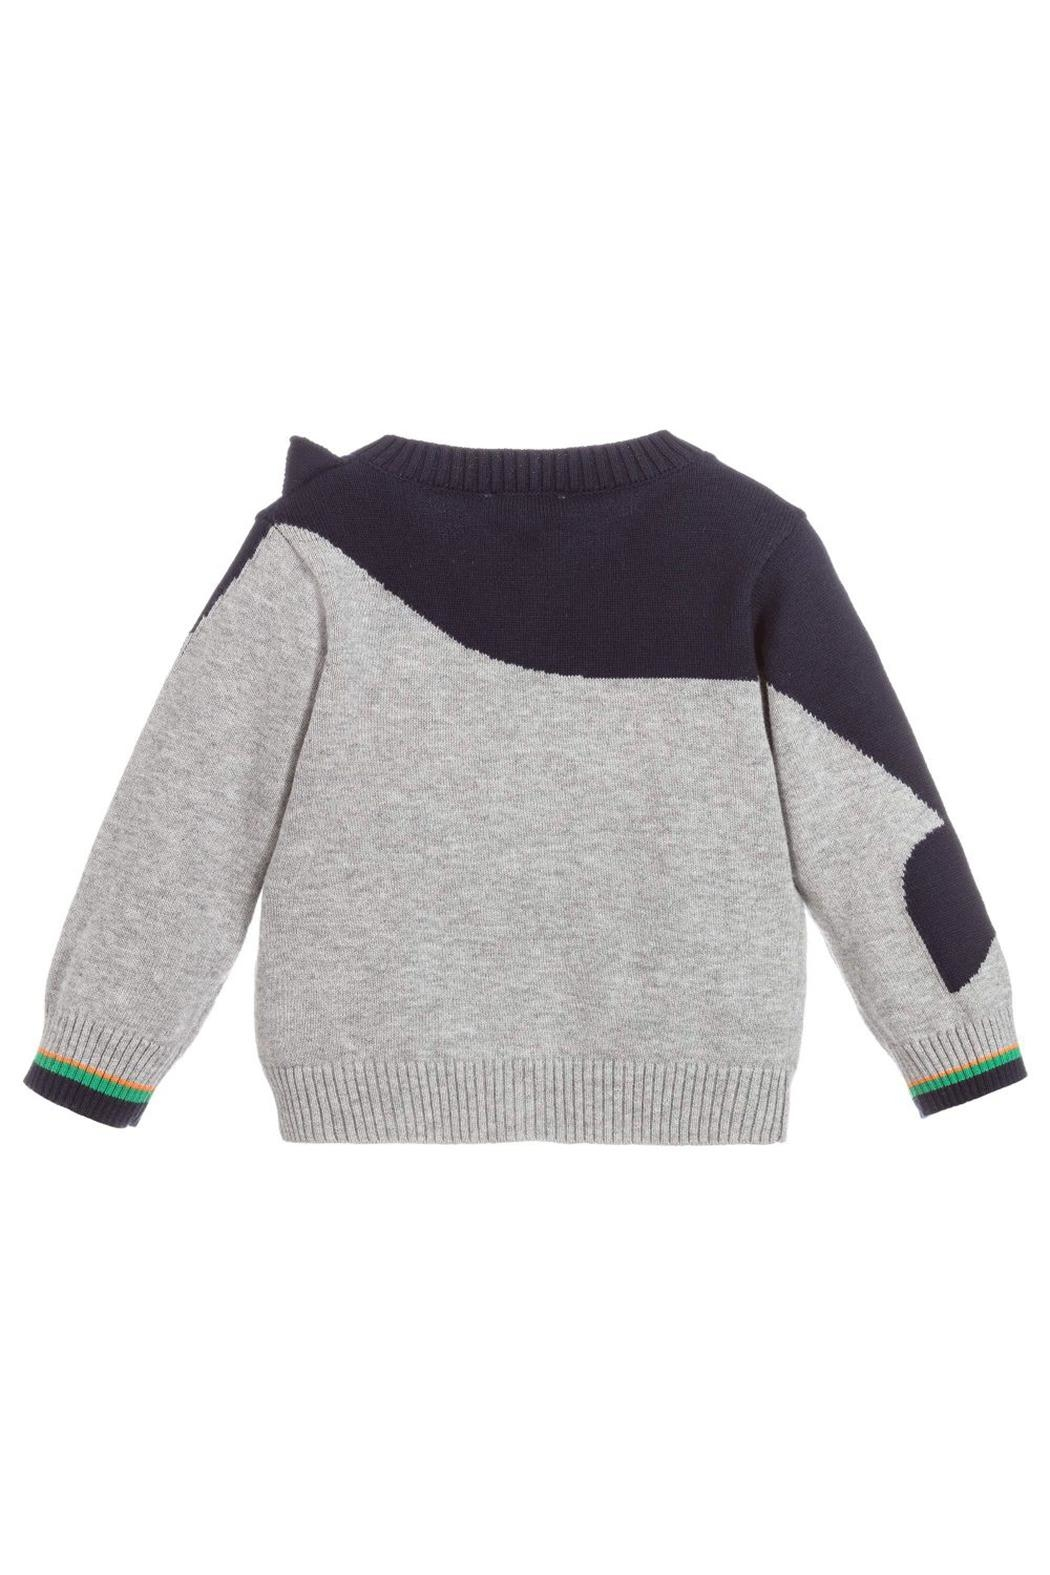 Paul Smith Junior Cotton-Knit 'Tiffen' Cardigan - Front Full Image